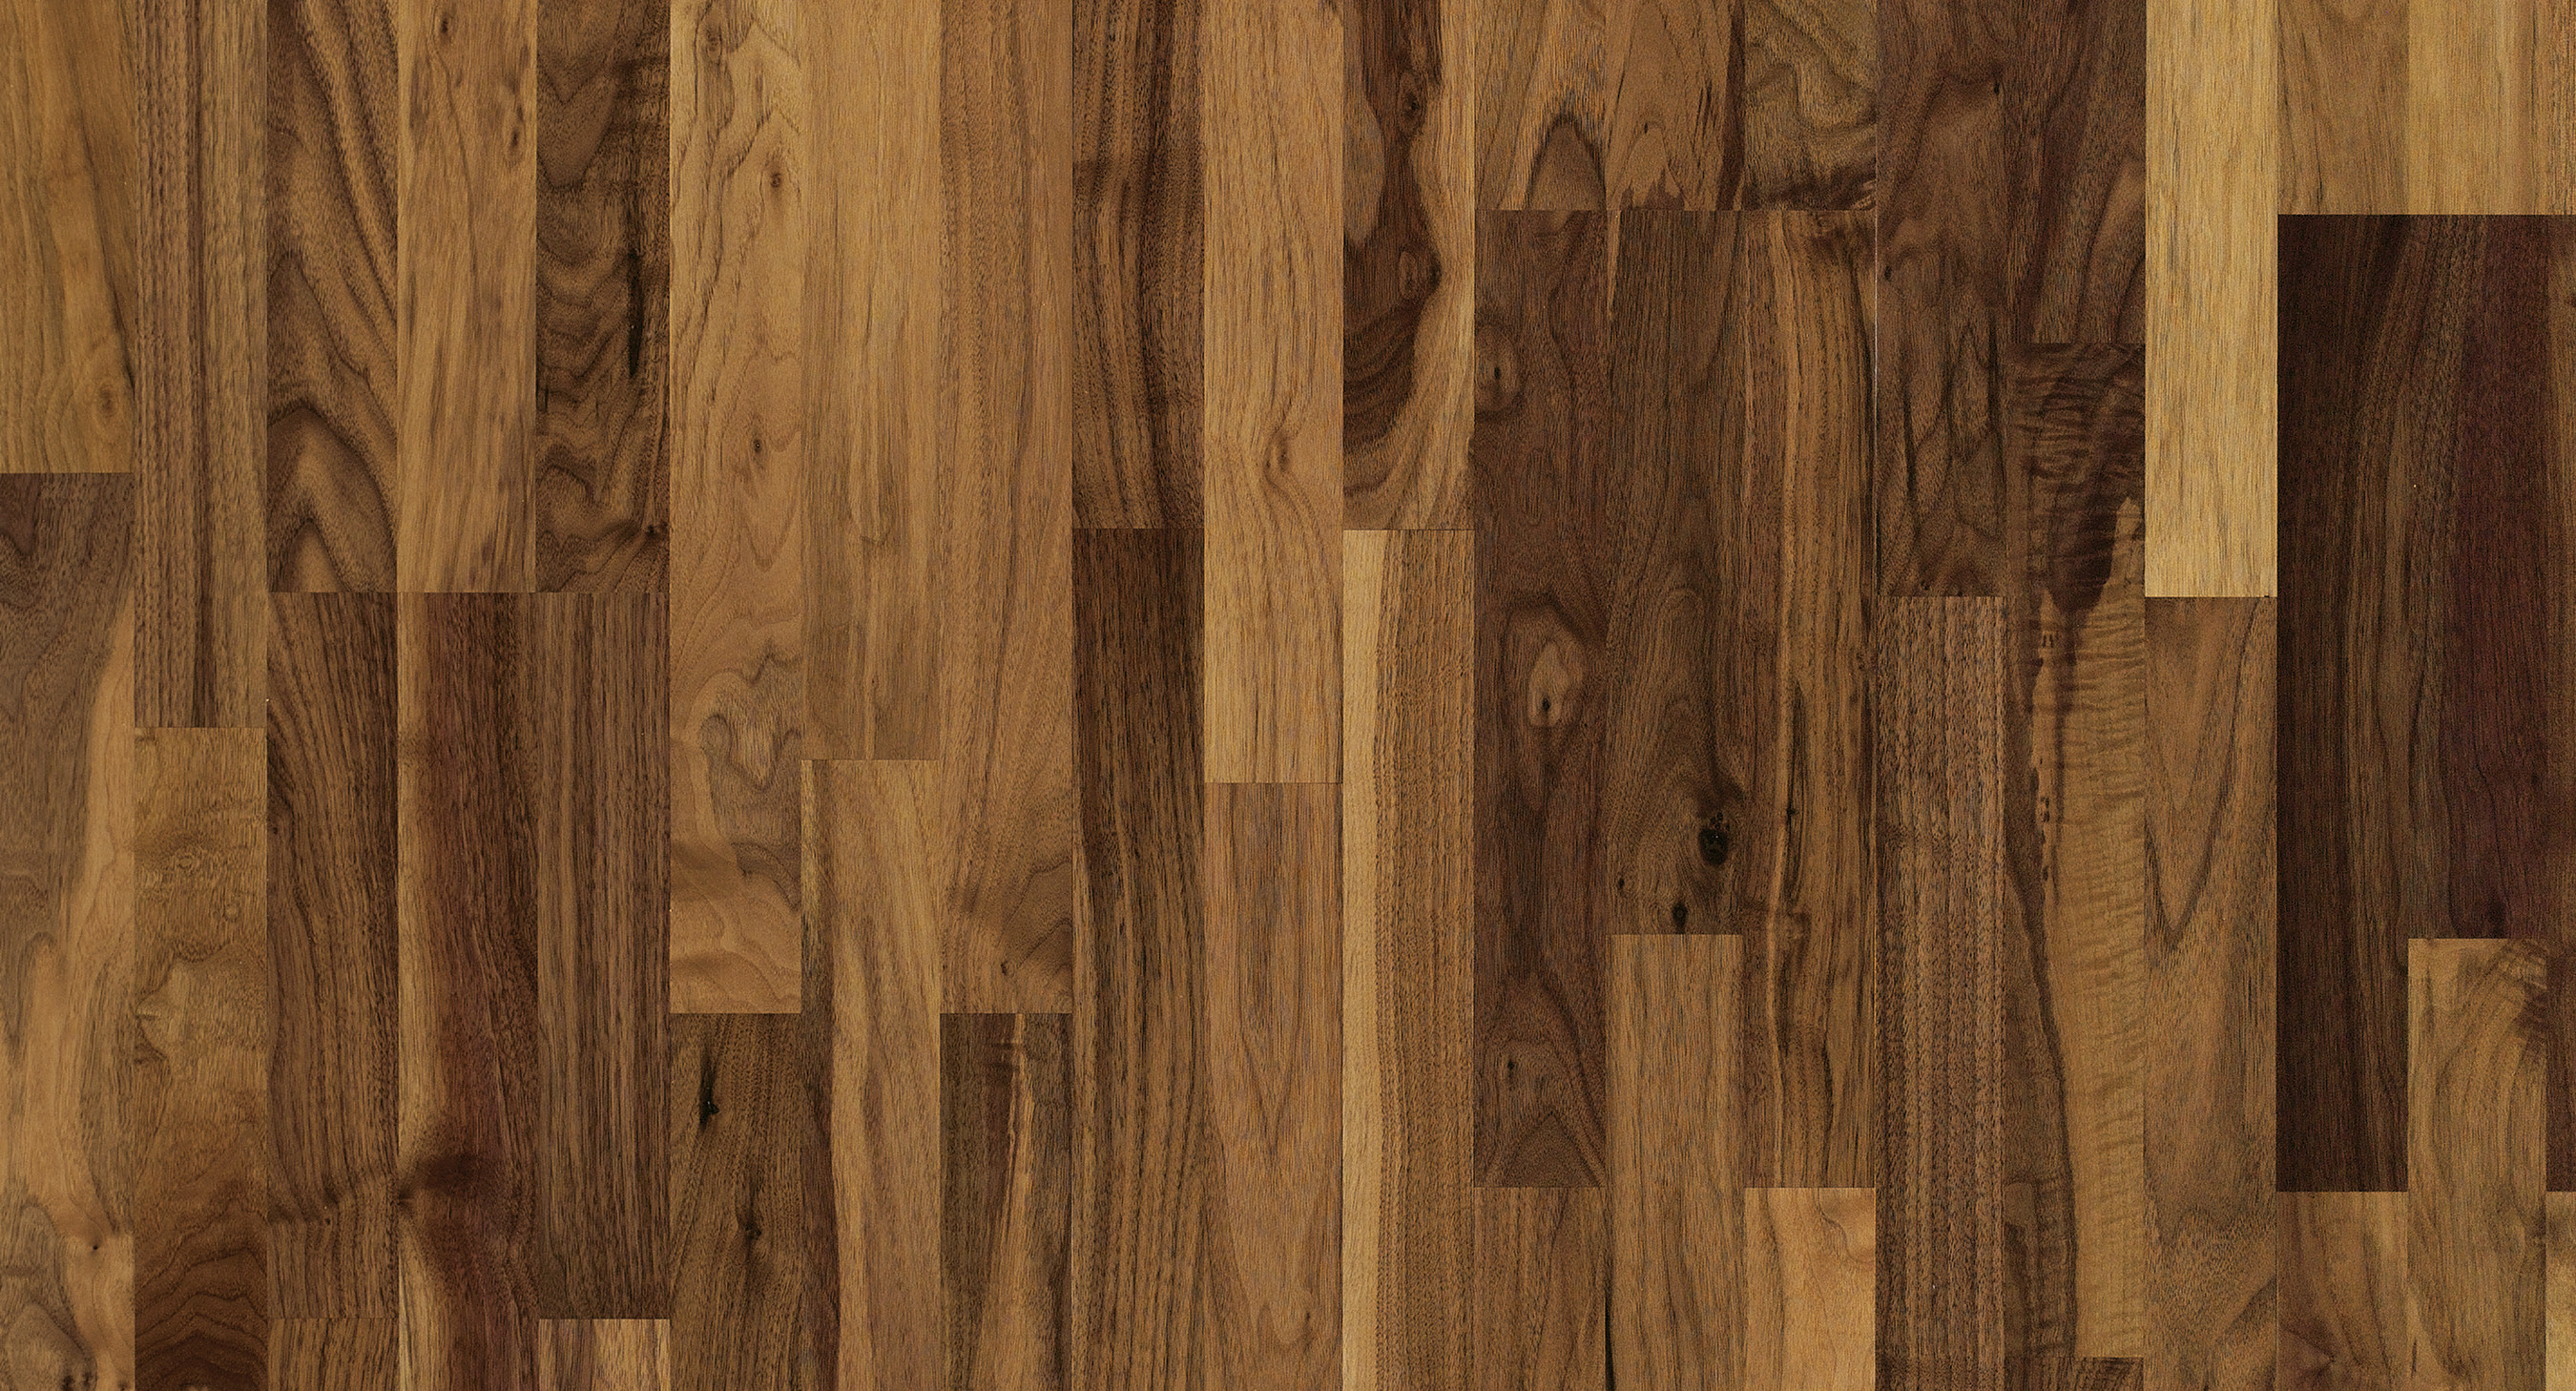 3 oak hardwood flooring of basic engineered wood flooring products parador intended for 45a